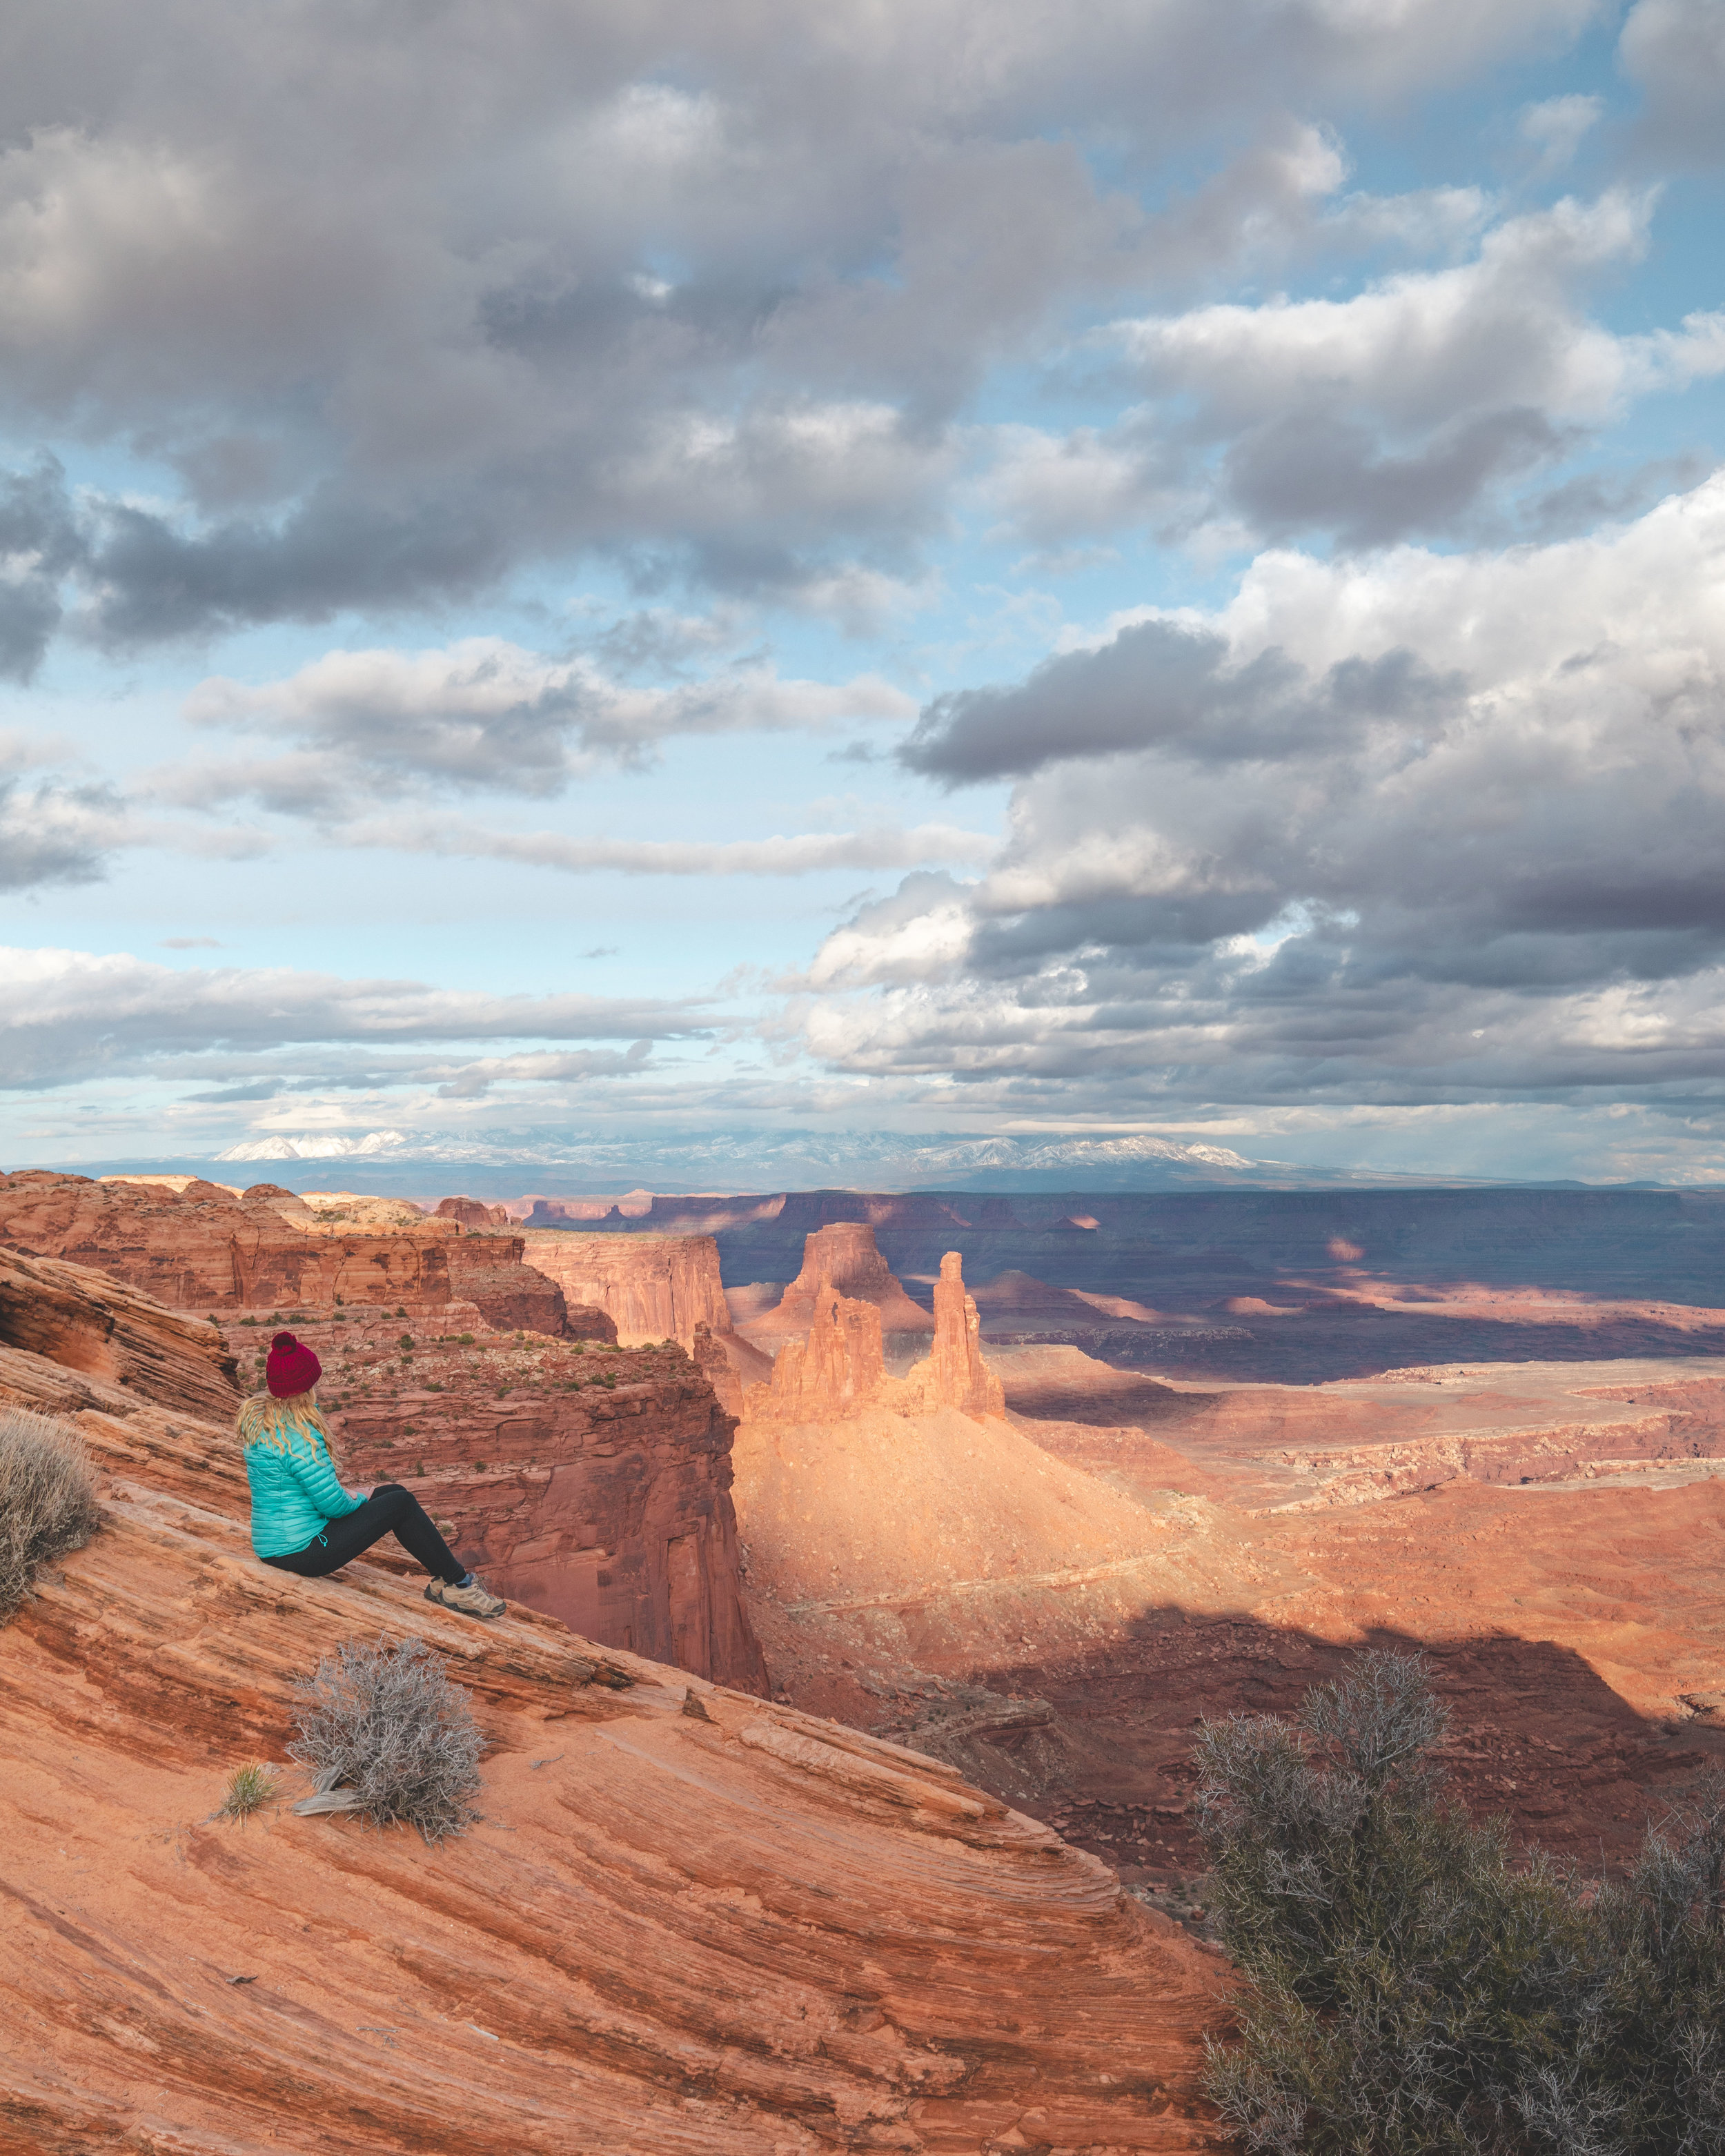 The views near Mesa Arch - Canyonlands National Park hikes